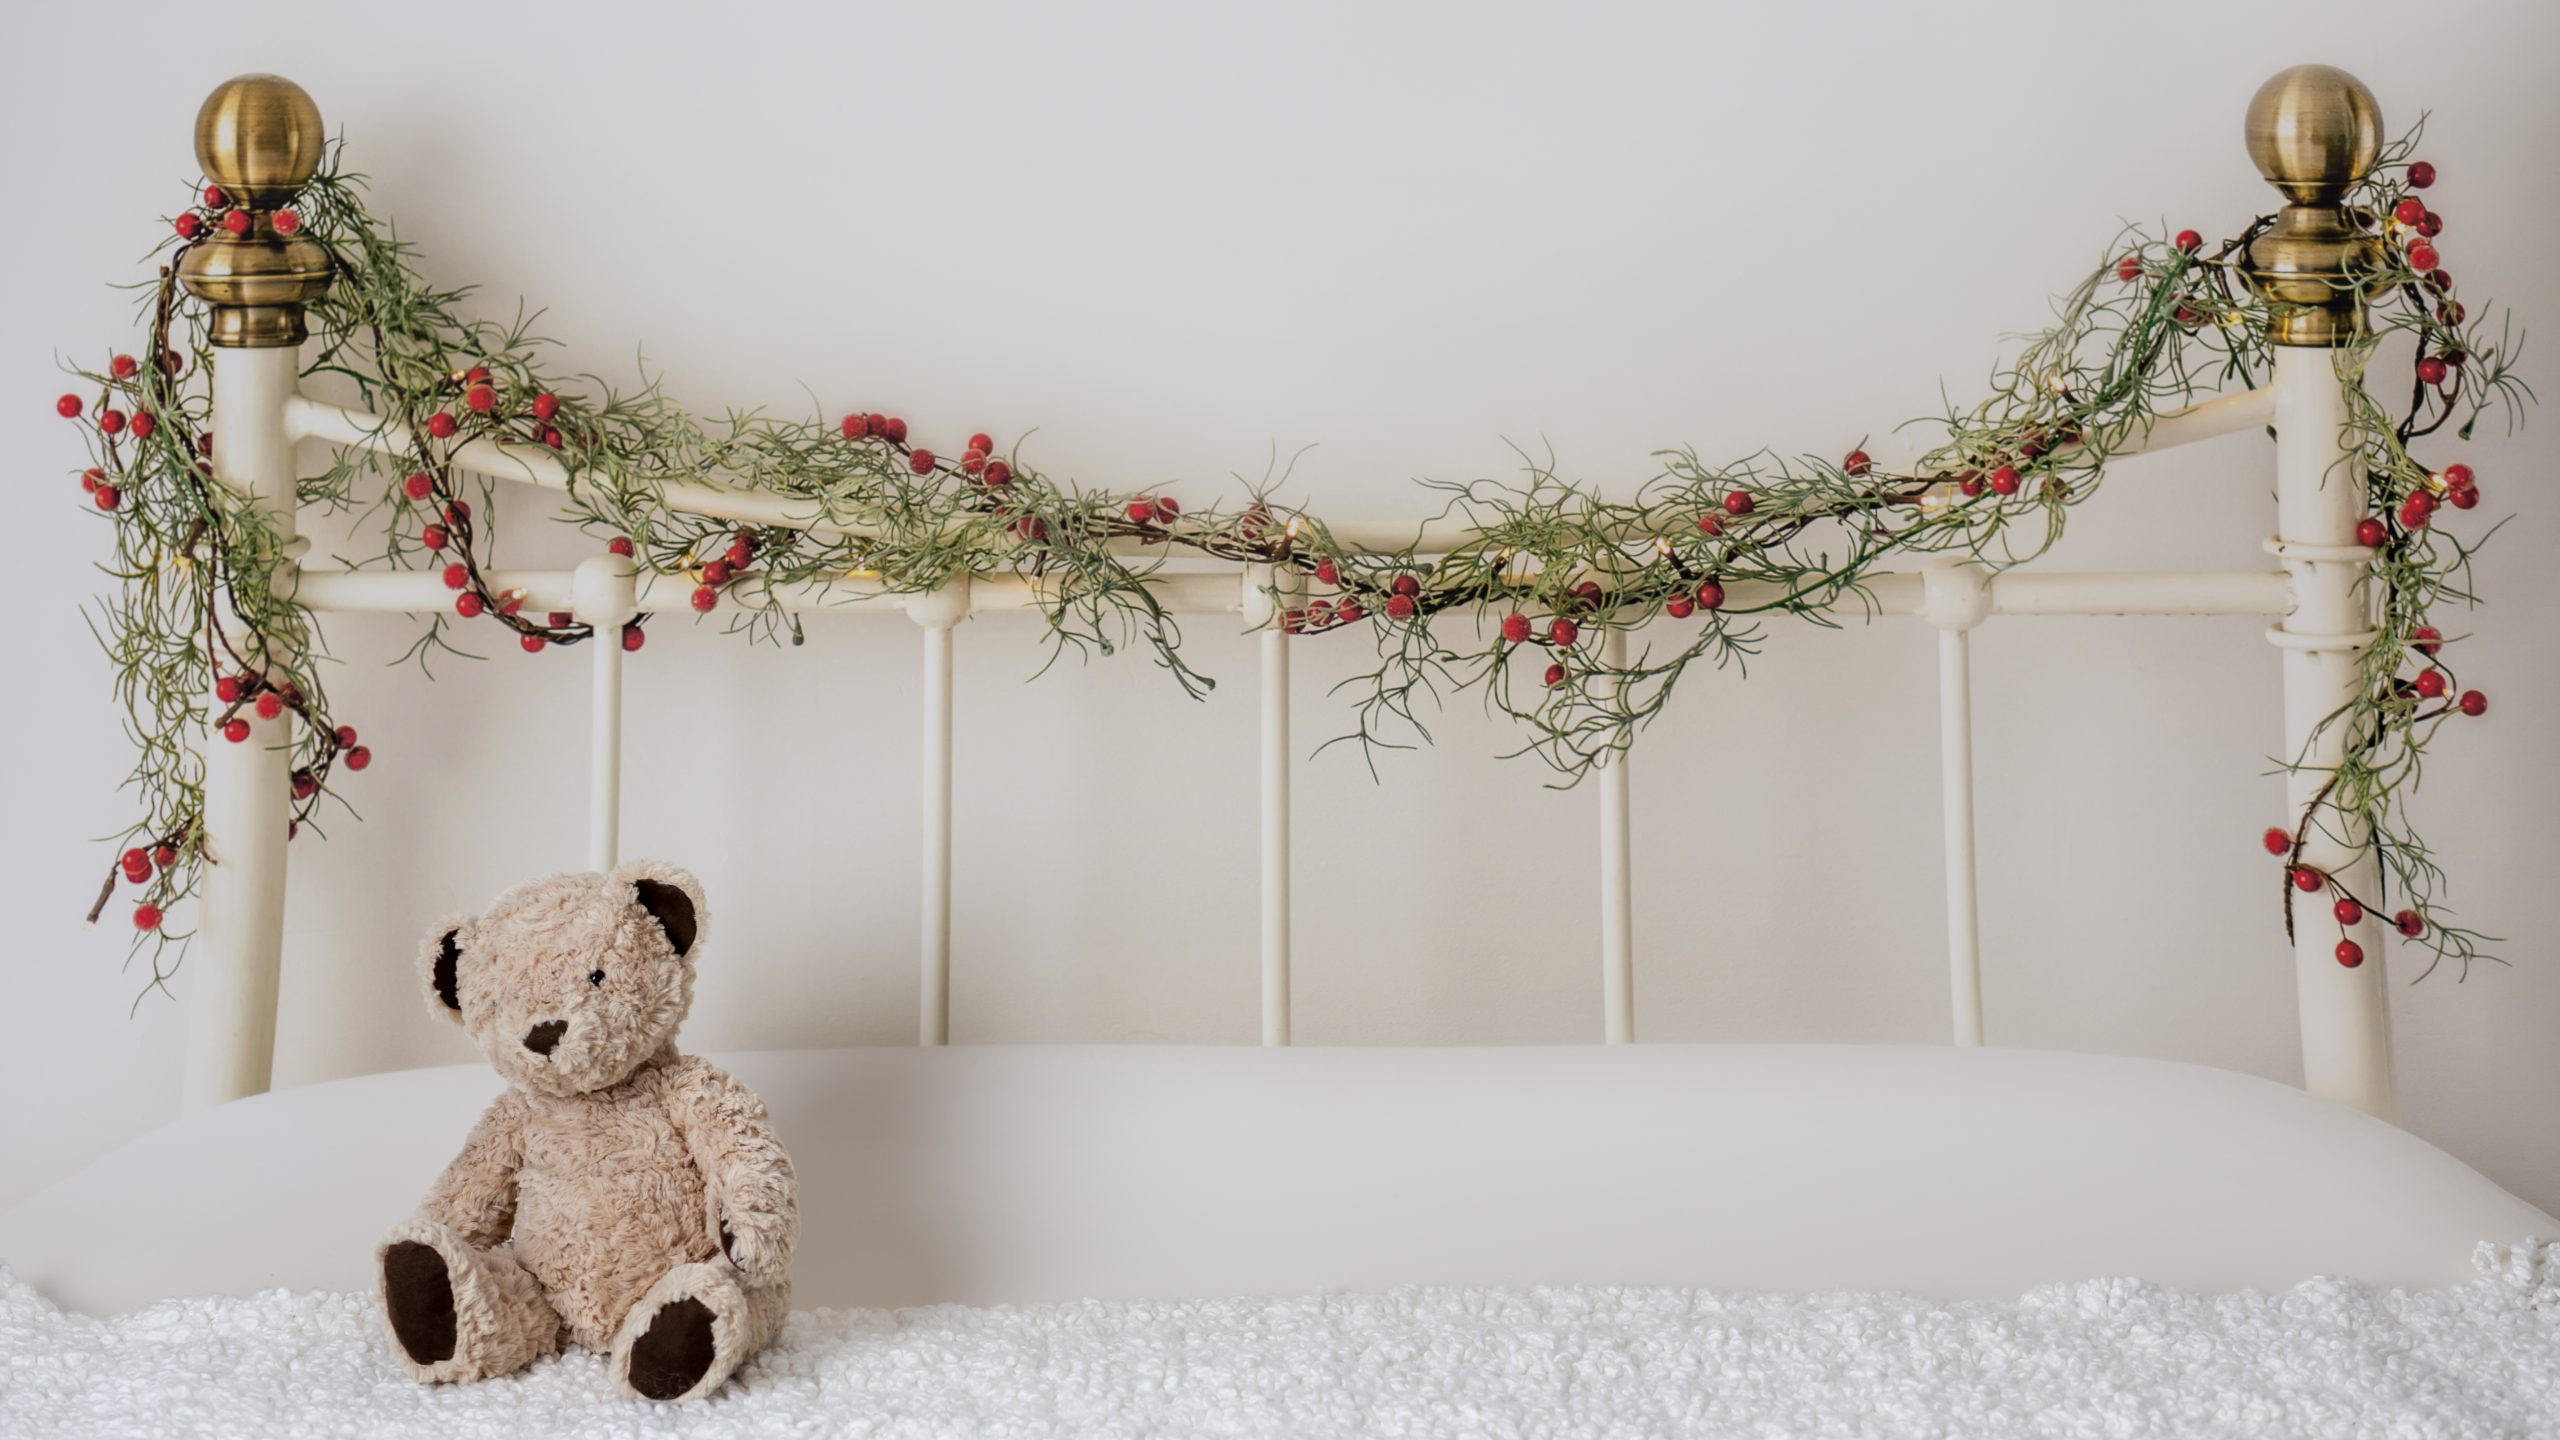 Christmas themed styling on a wrought iron bed